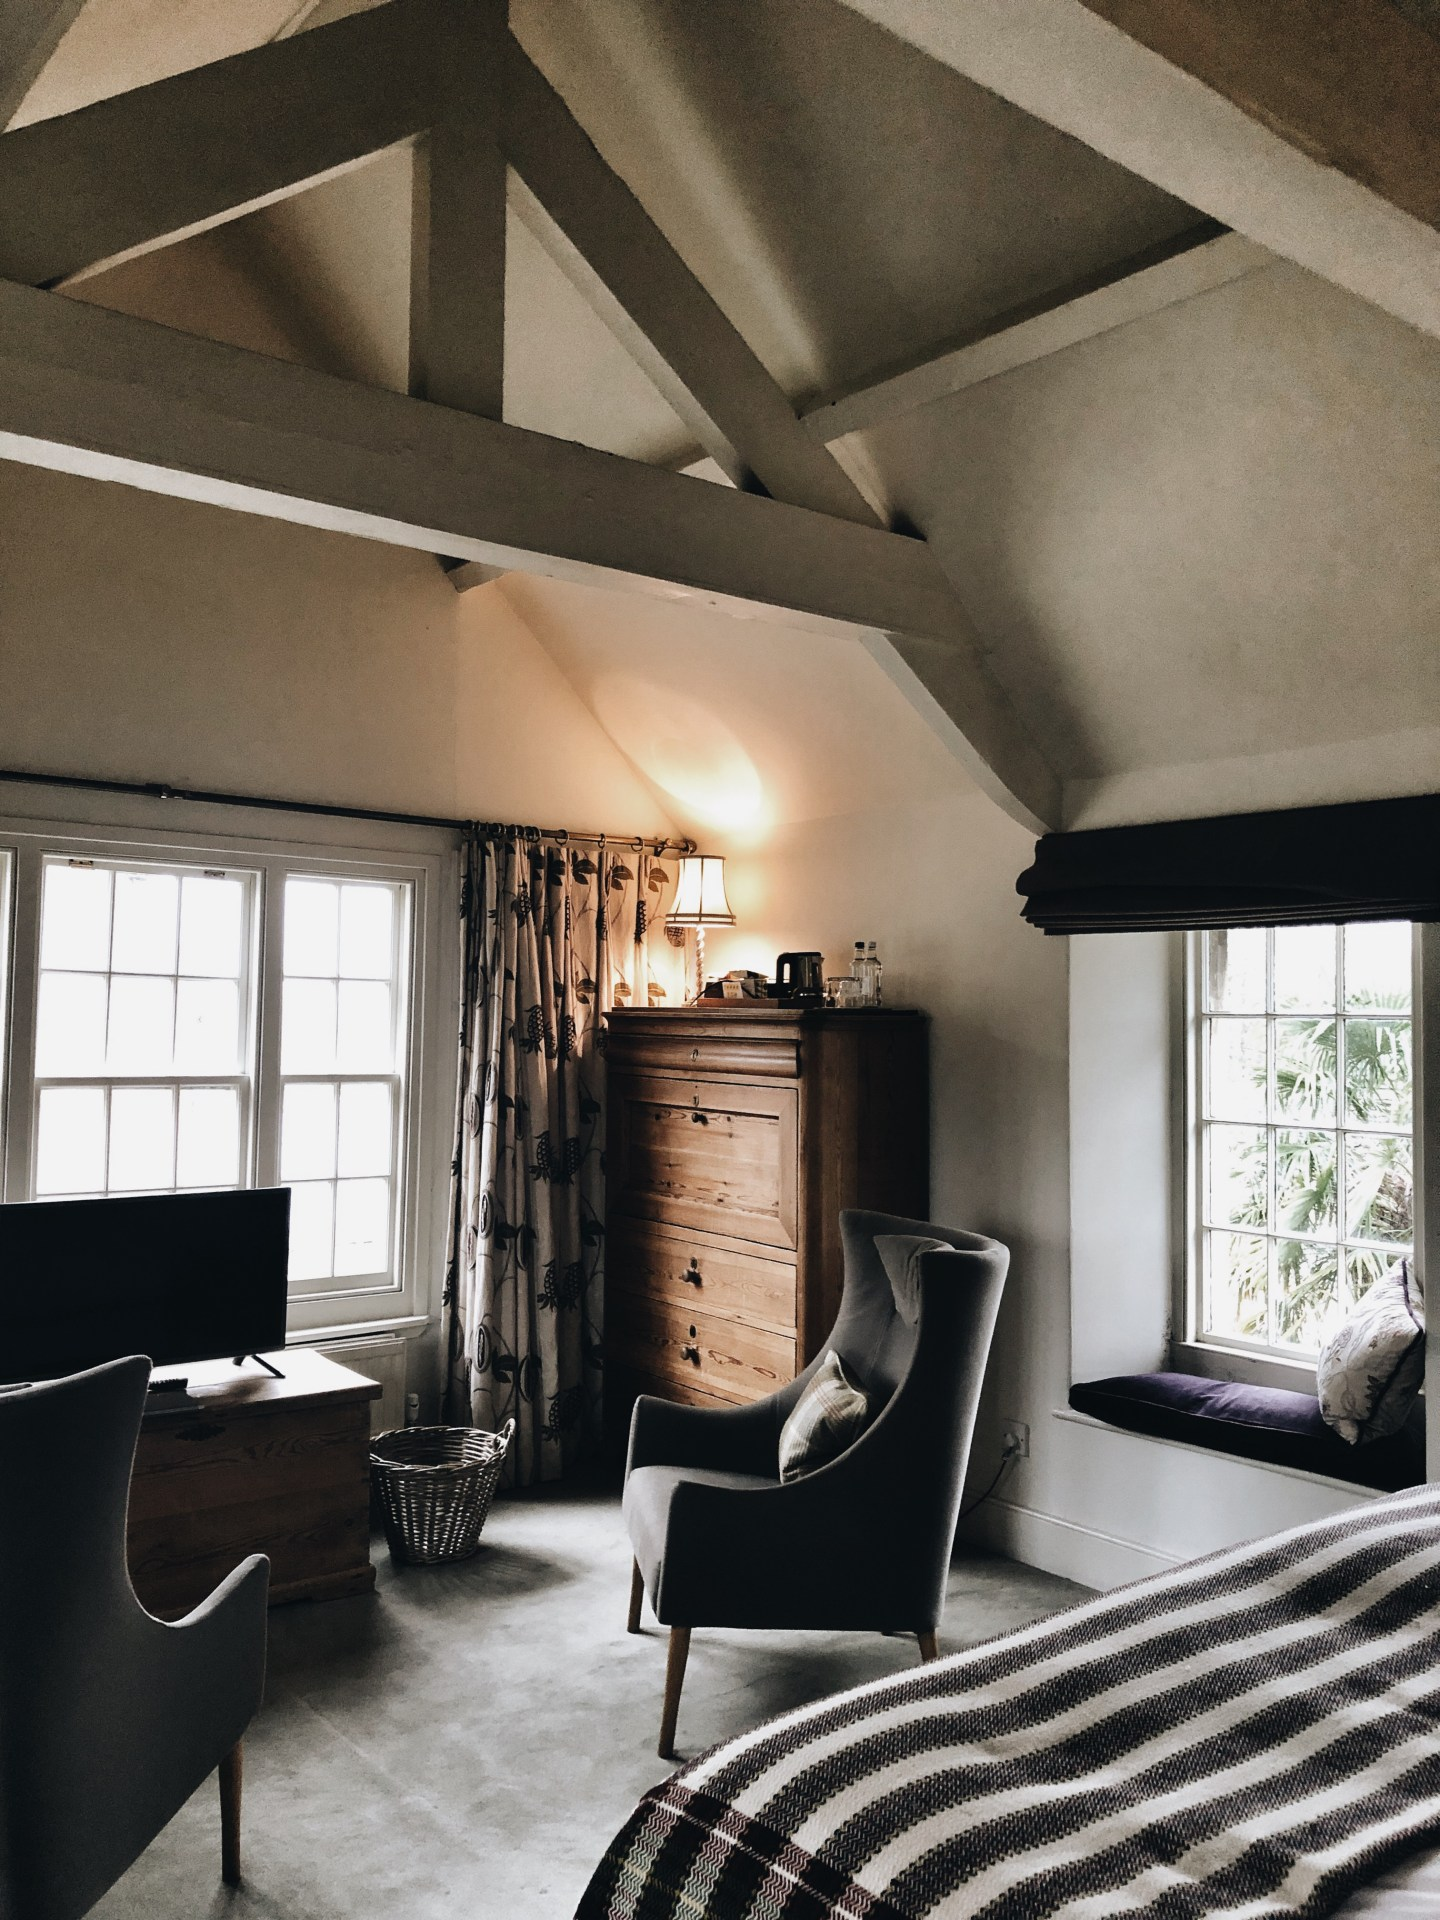 cosy hygge family travel hotel room